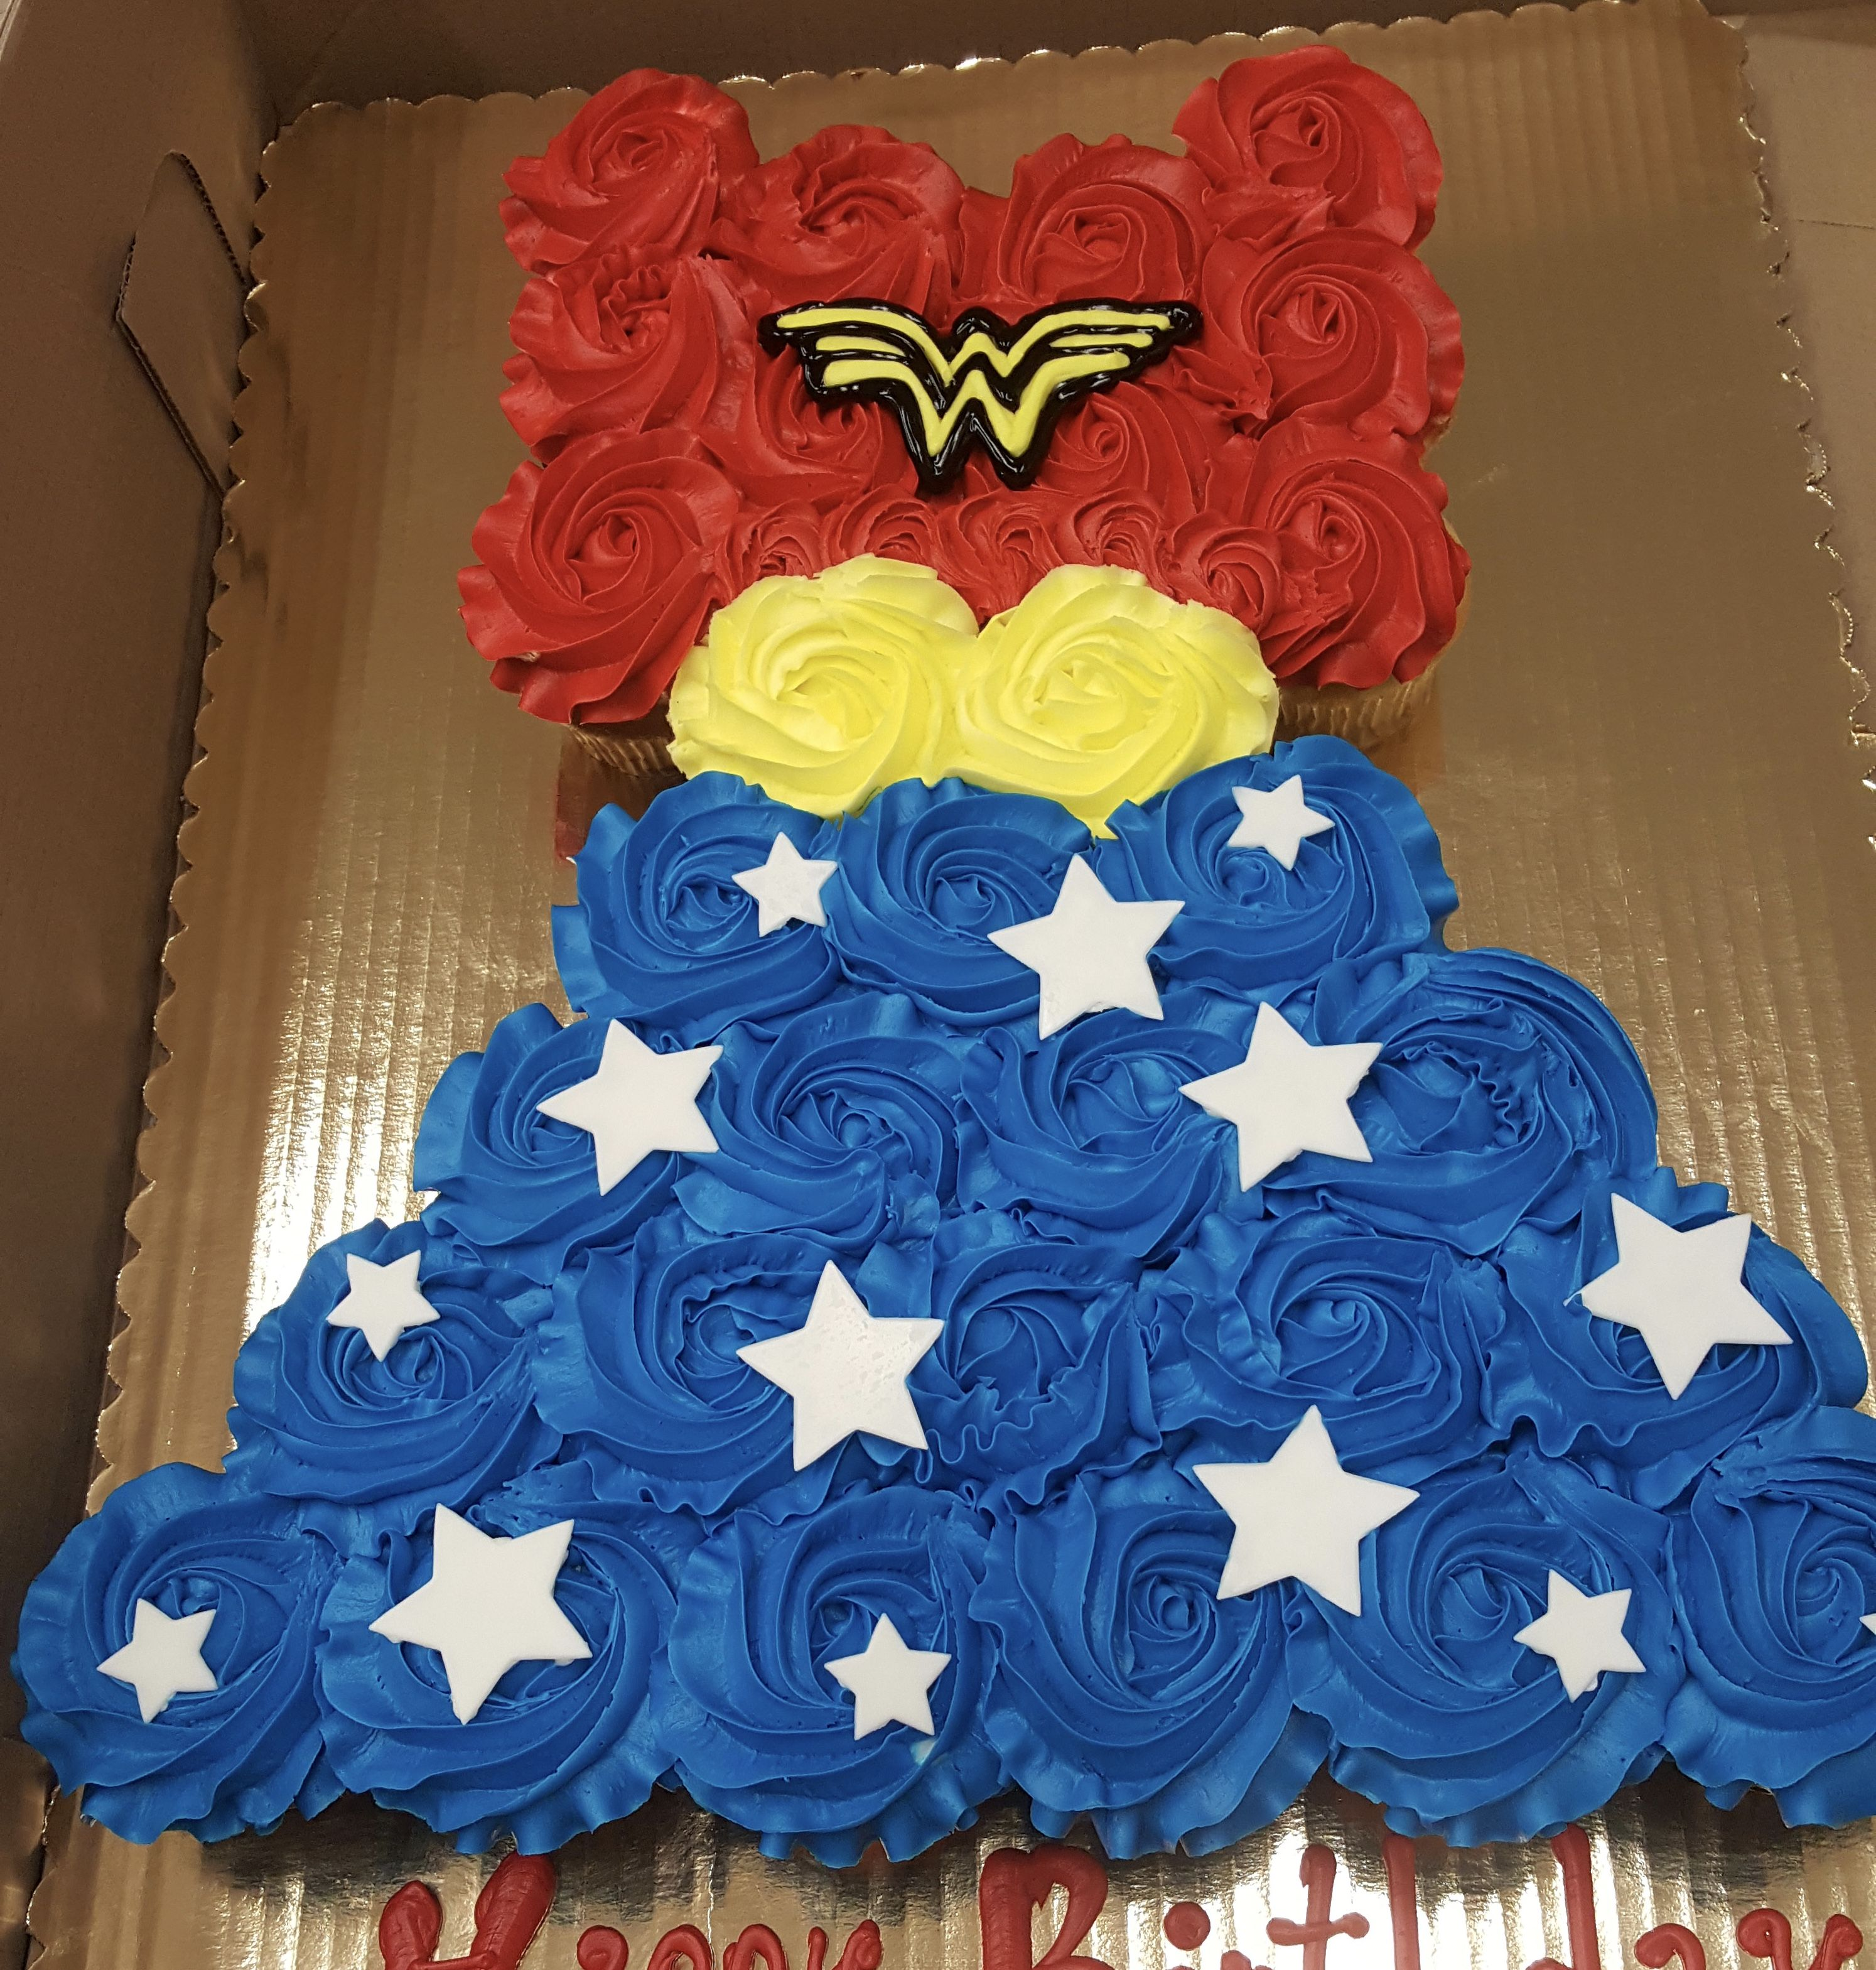 Calumet Bakery Wonder Woman Cupcake Cake 5th Birthday Party Ideas Superhero